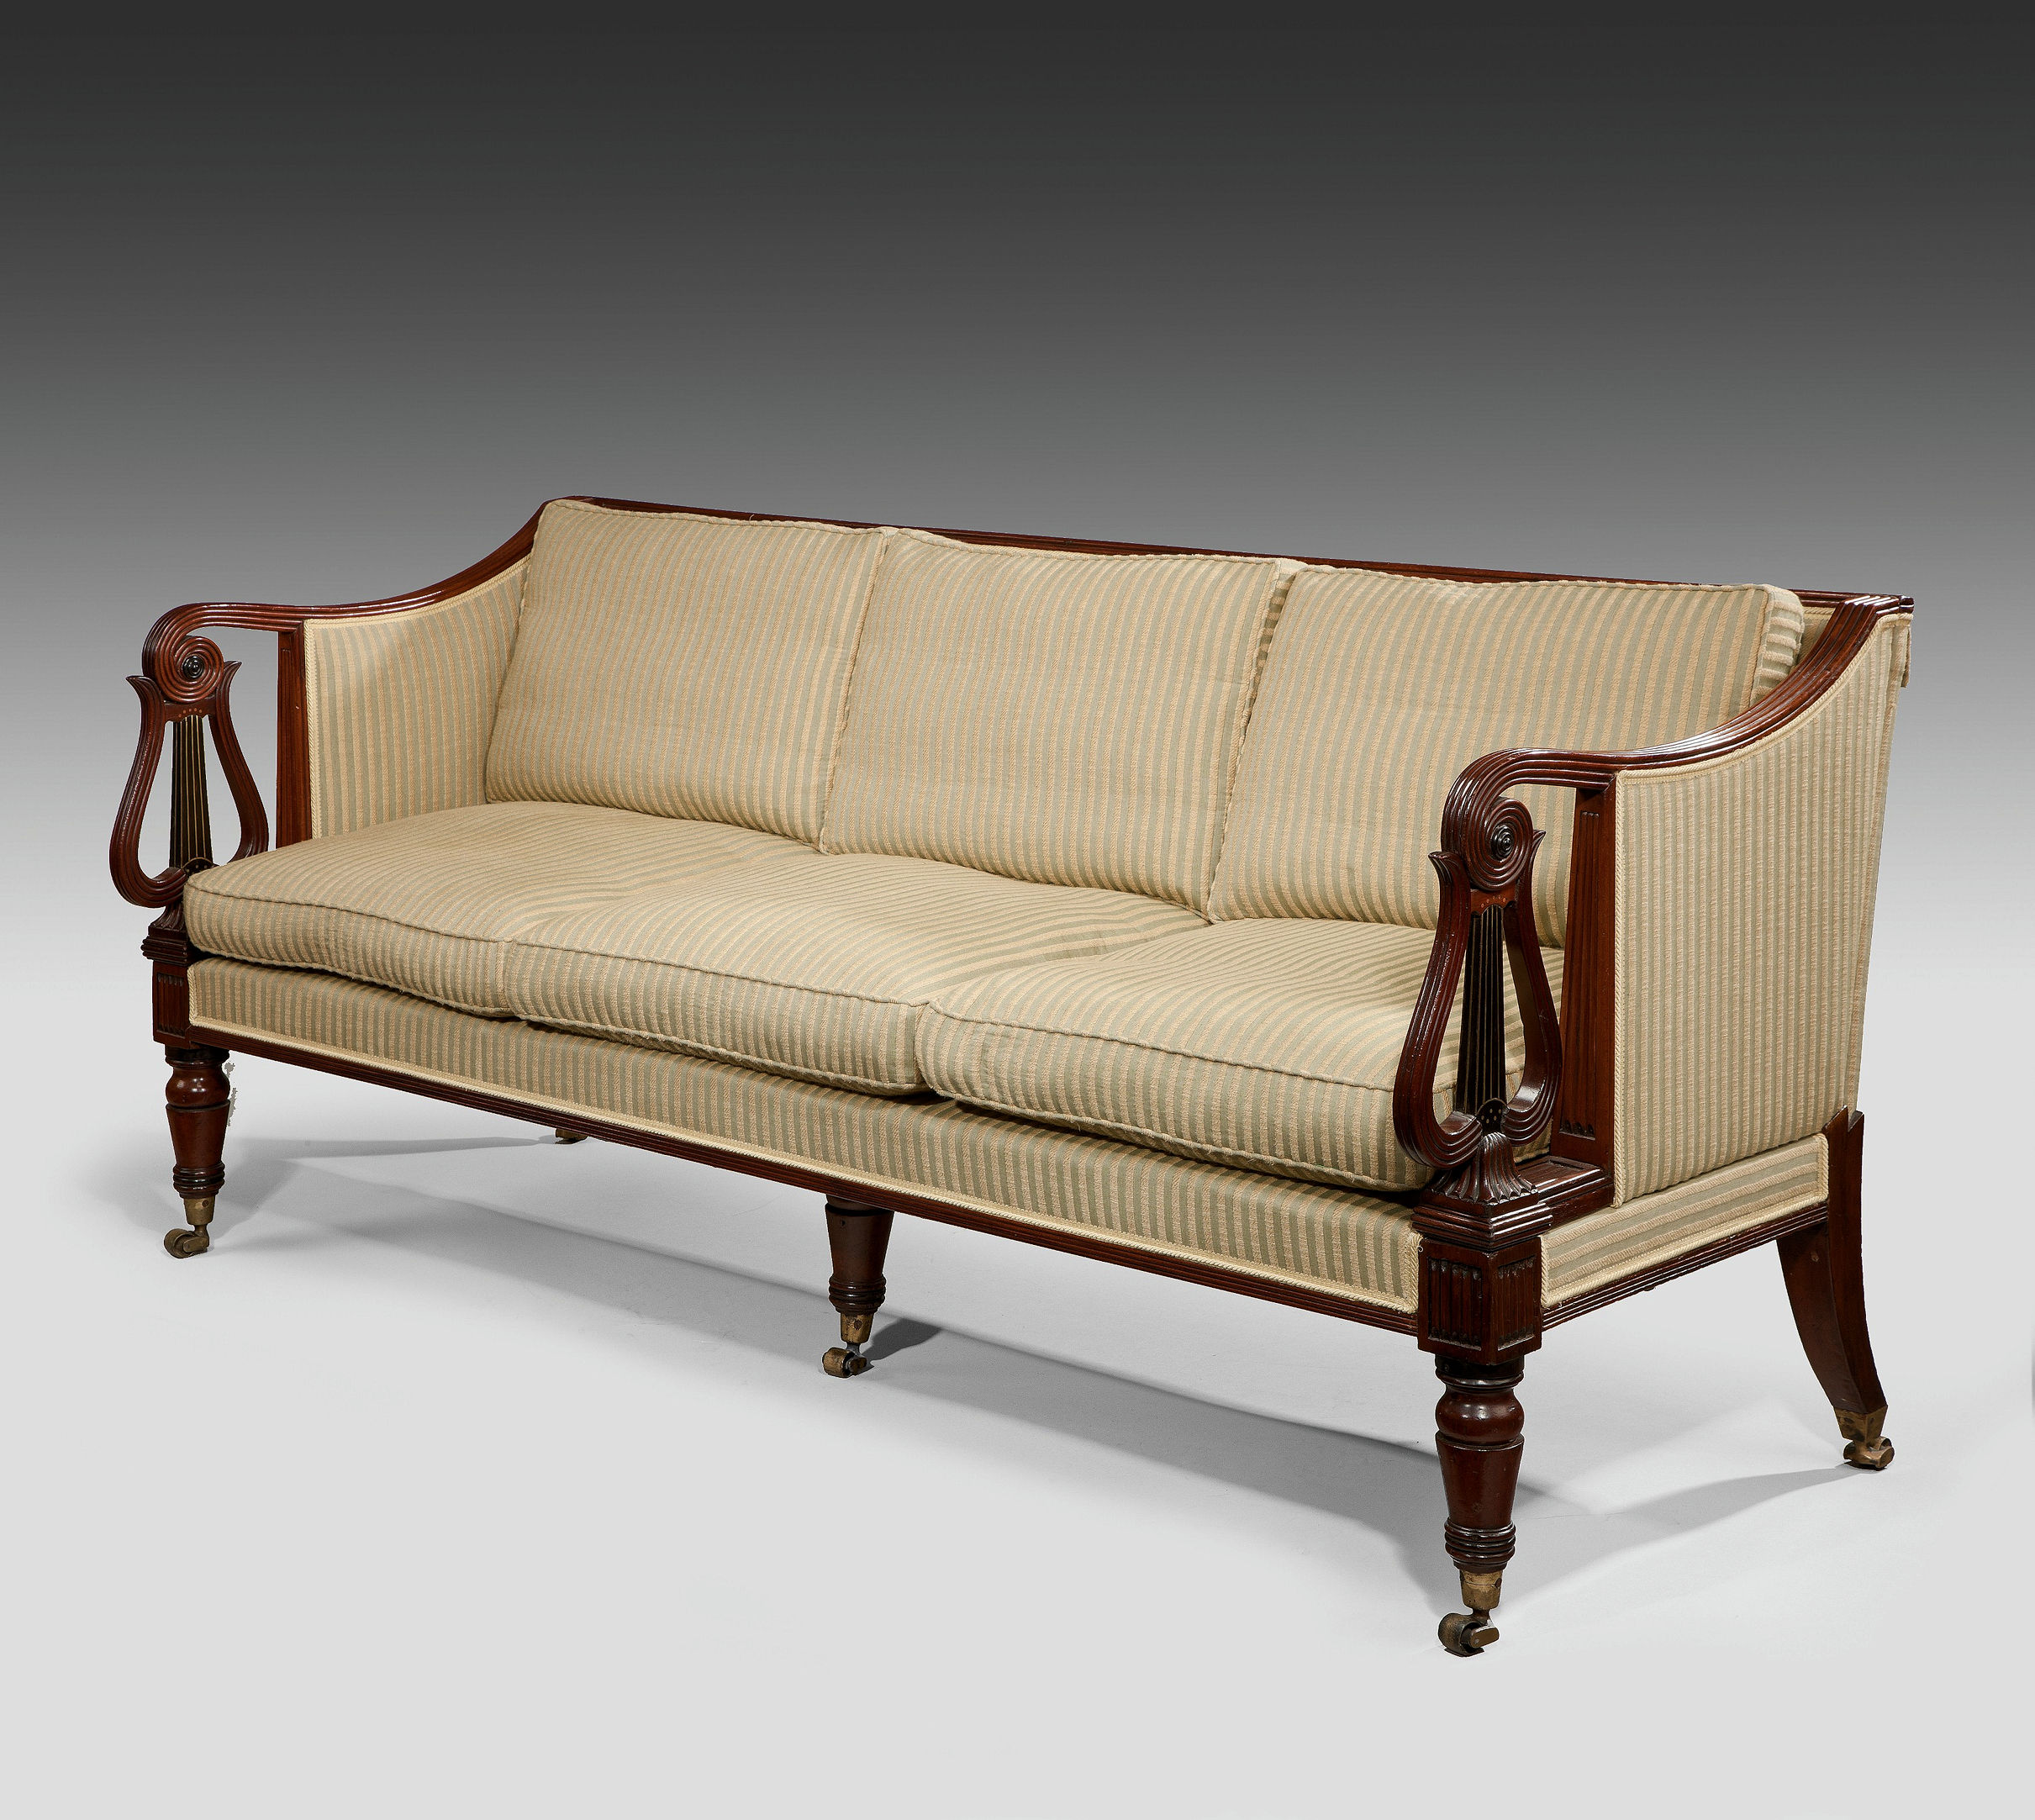 RARE ANTIQUE REGENCY CAMPAIGN SOFA BY MORGAN & SANDERS Richard